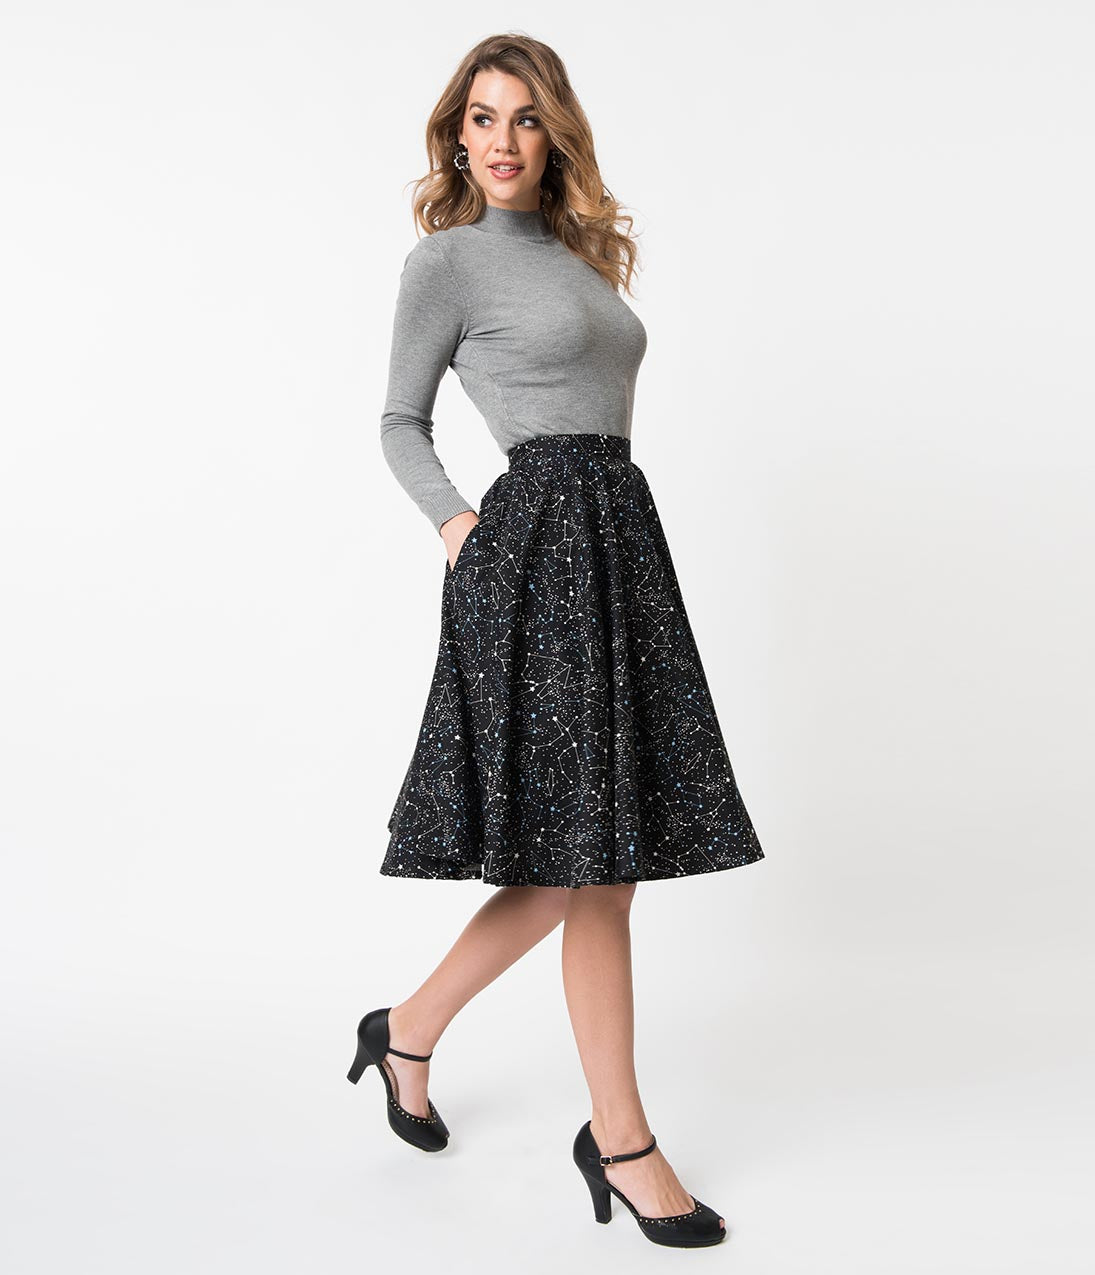 Retro Green Ton Sur Outfit With A Midi Skirt Beret And Lace